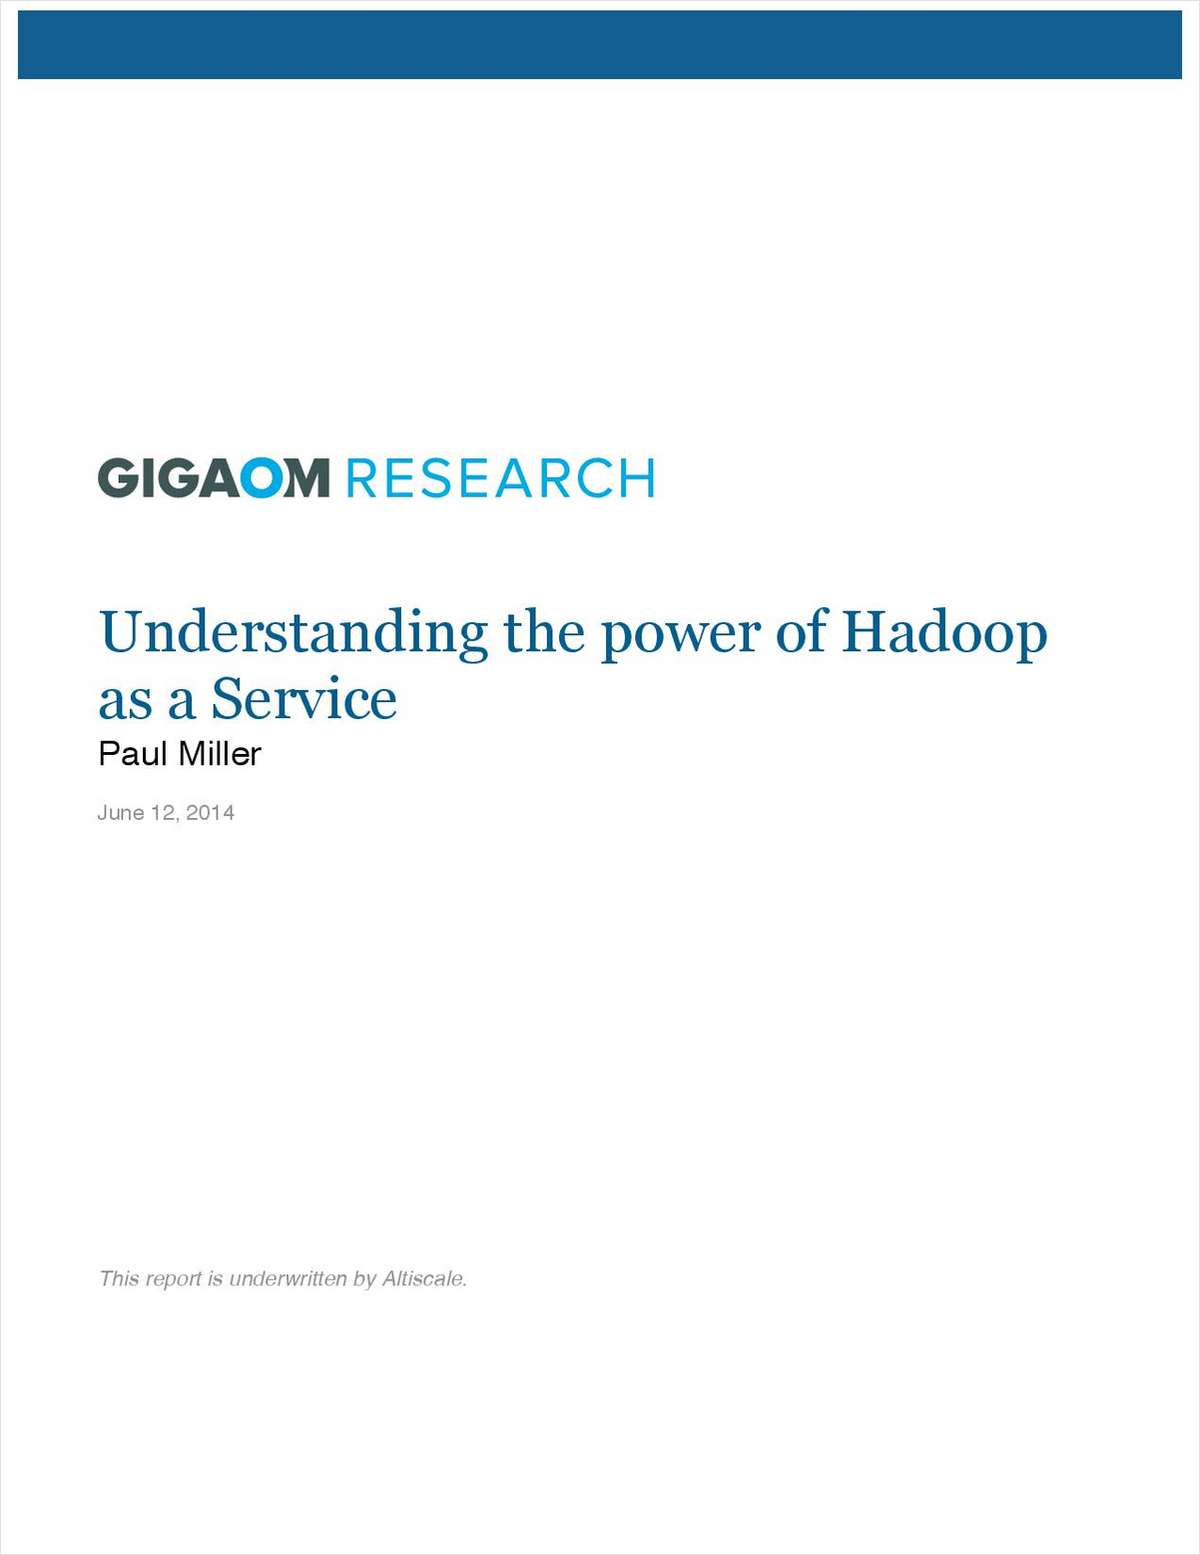 Gigaom Analyst Report: The Power of Hadoop as a Service